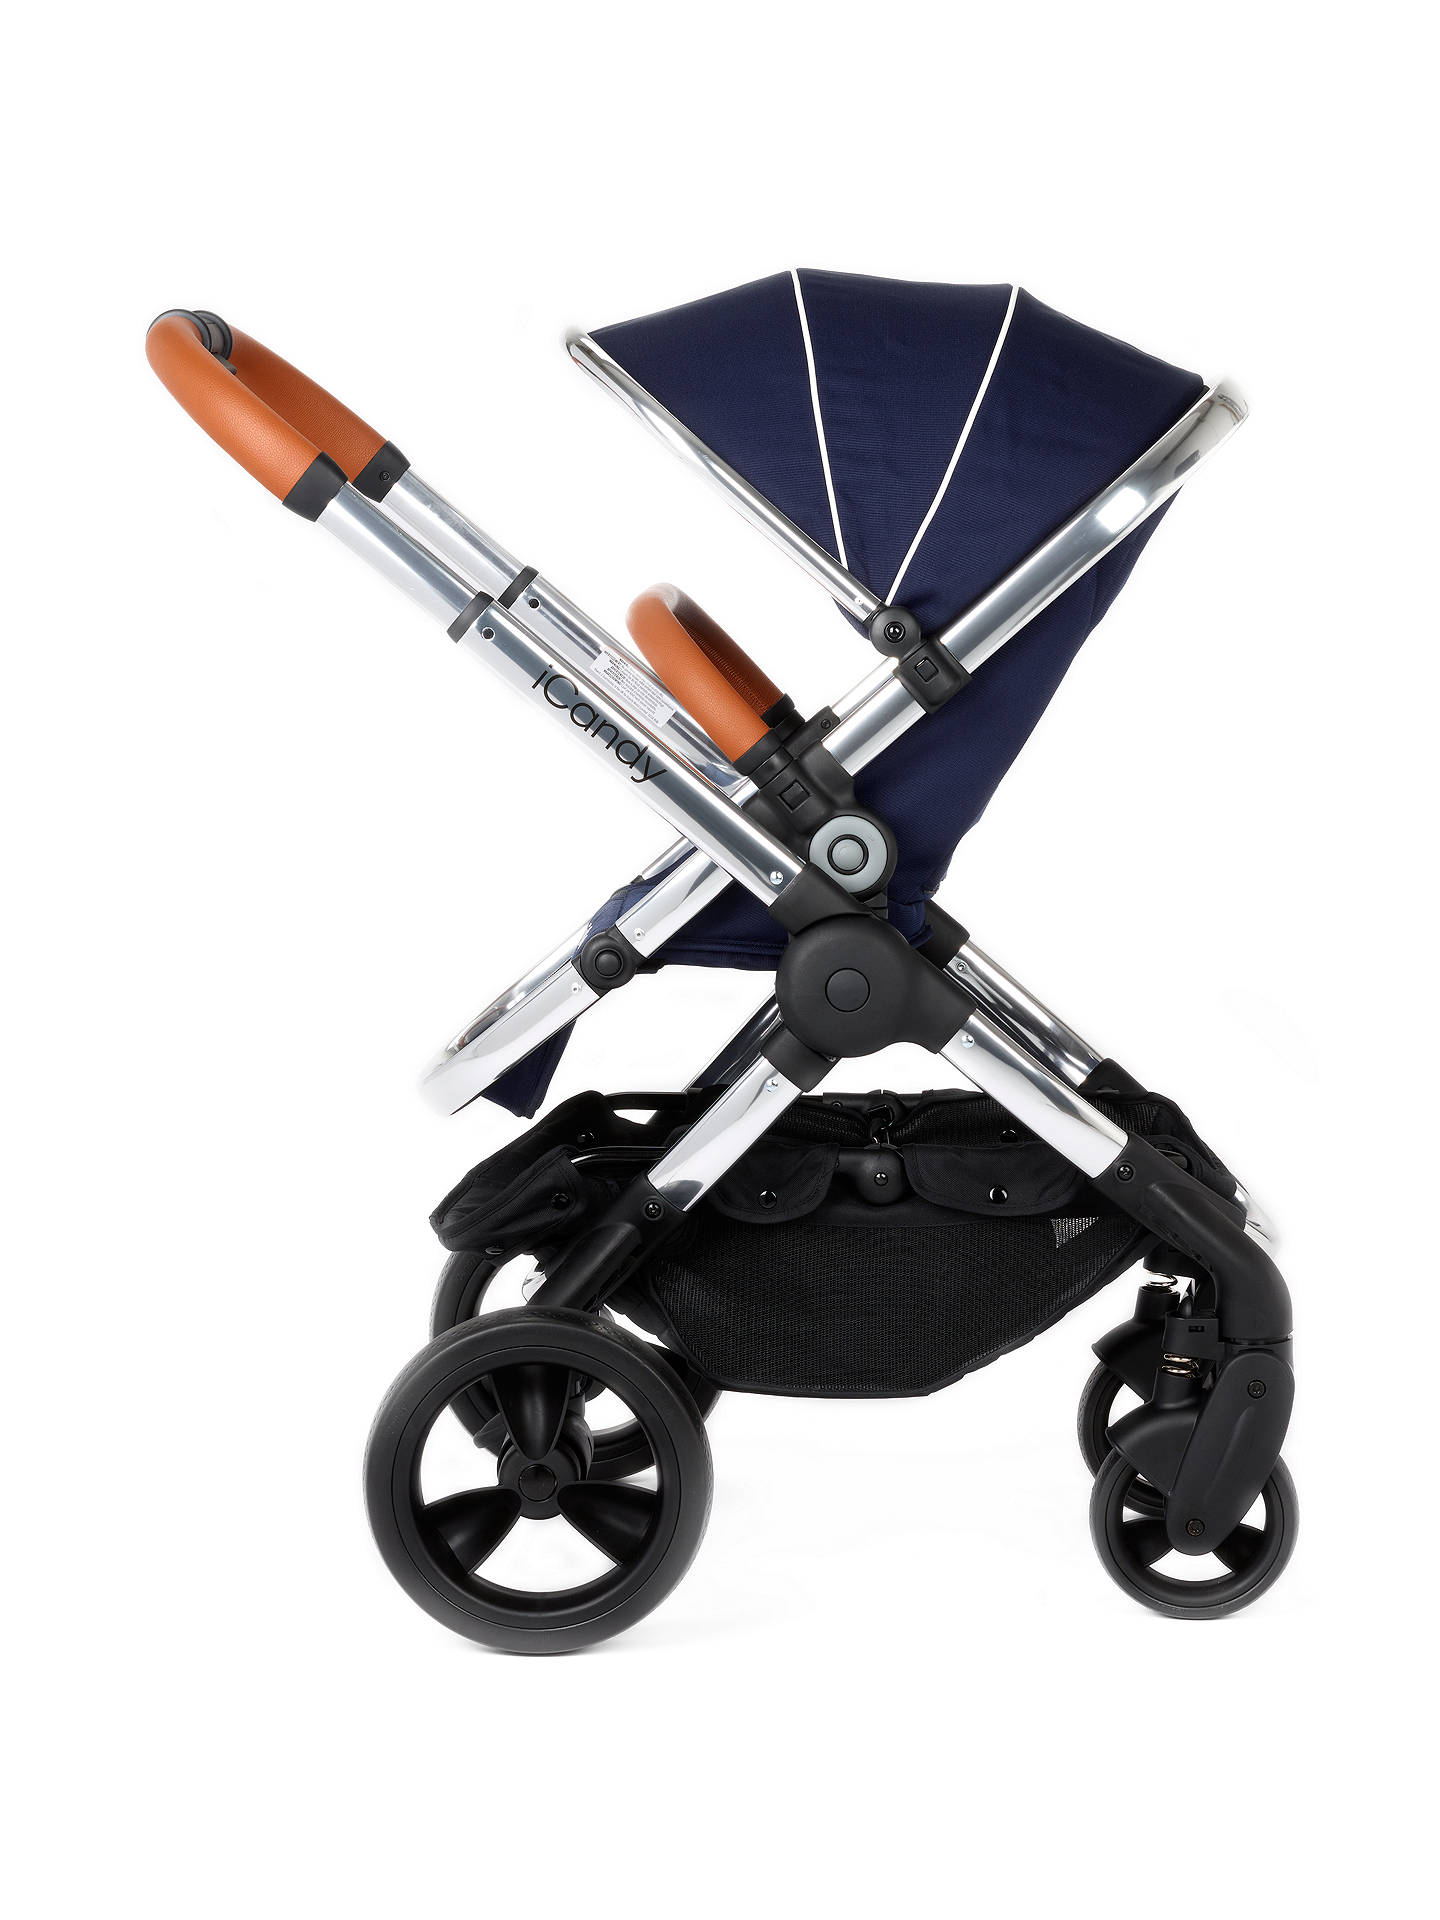 Icandy buggy reviews